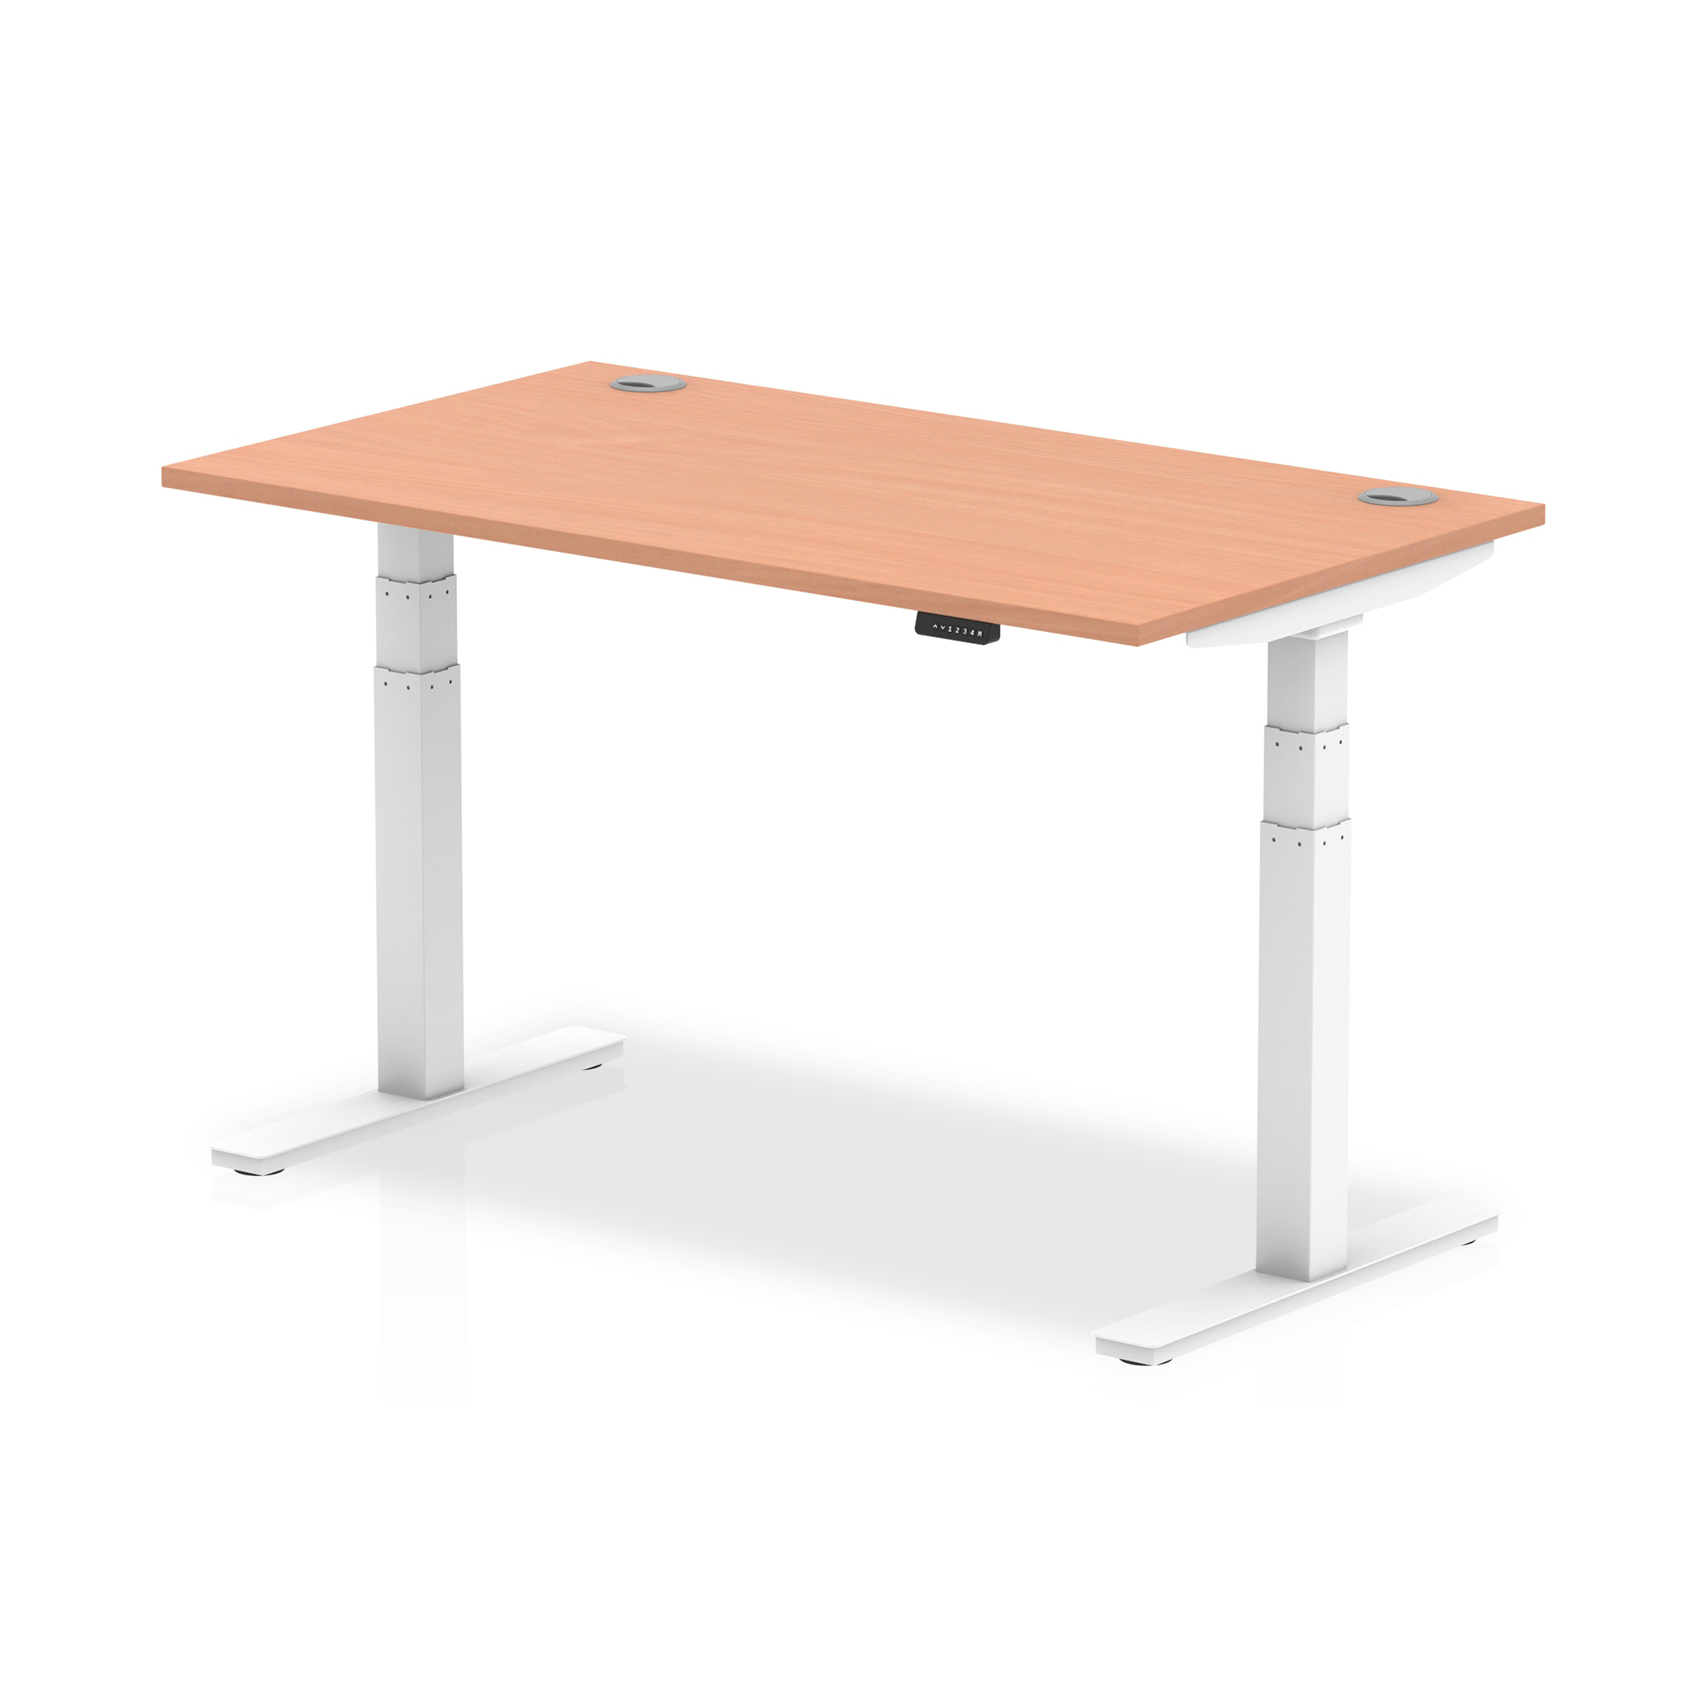 Trexus Sit Stand Desk With Cable Ports White Legs 1400x800mm Beech Ref HA01102